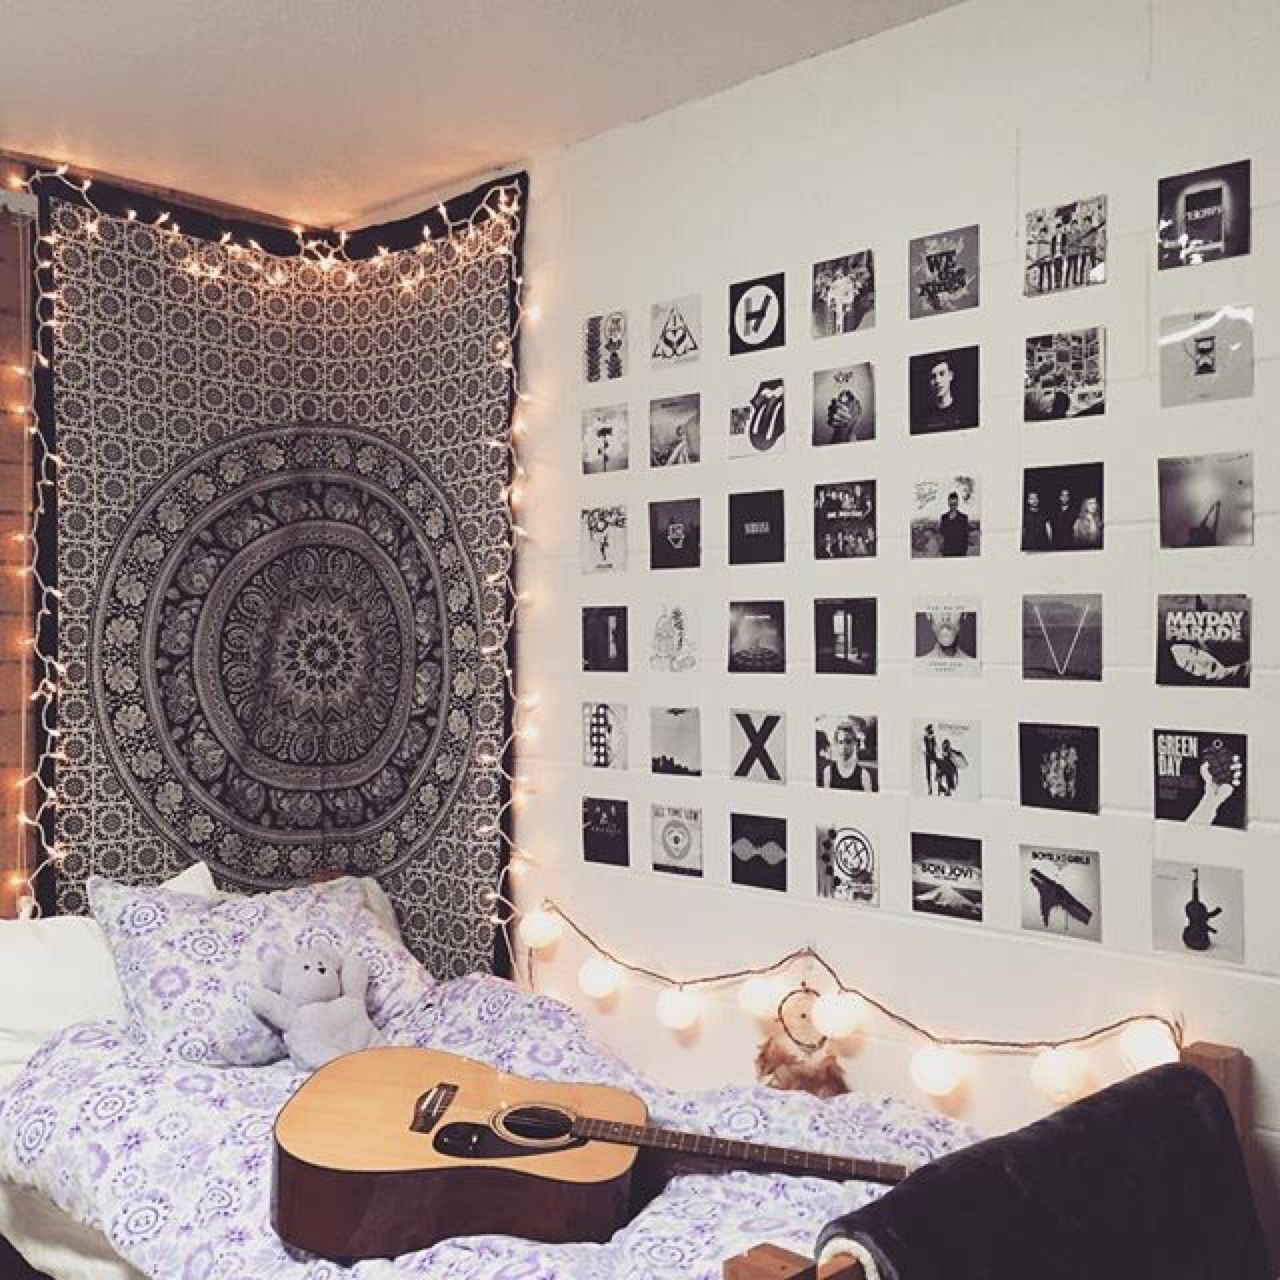 source myroomspo tapestry bedroom tumblr bedroom decoration room